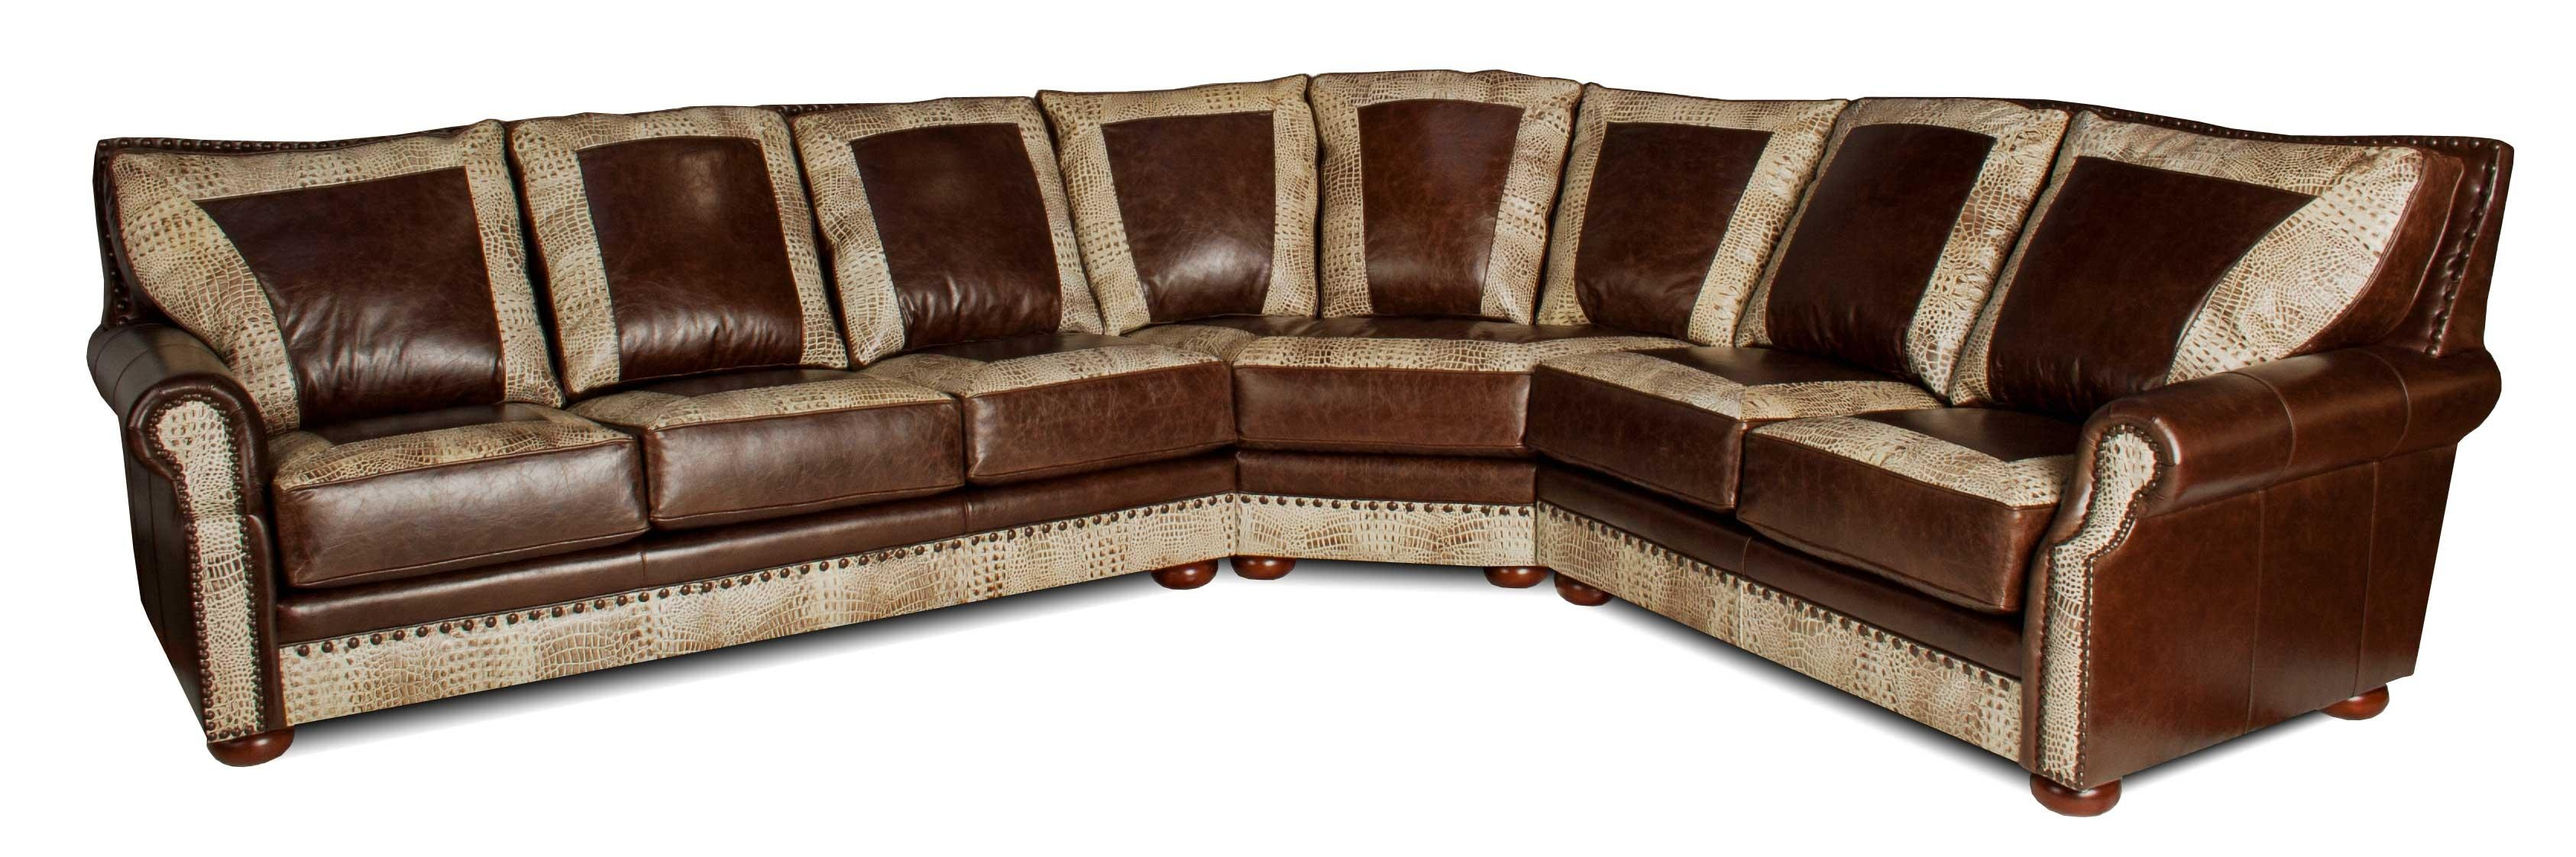 Leather Creations – Hill Country Collection Inside Leather Sectional Austin (Image 4 of 20)